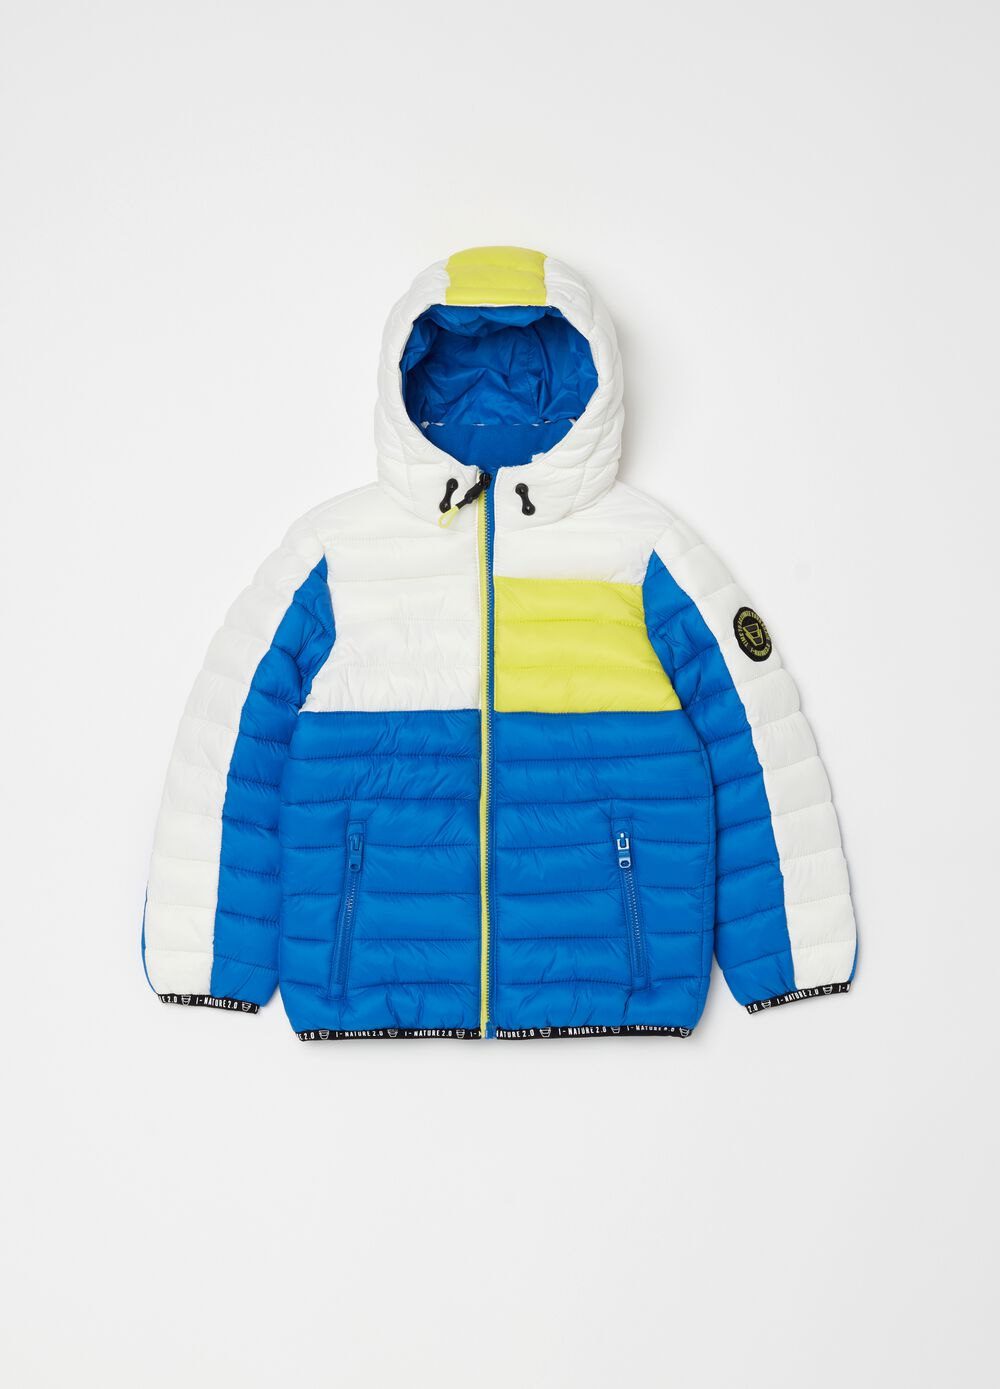 Jacket with padding and fluorescent details